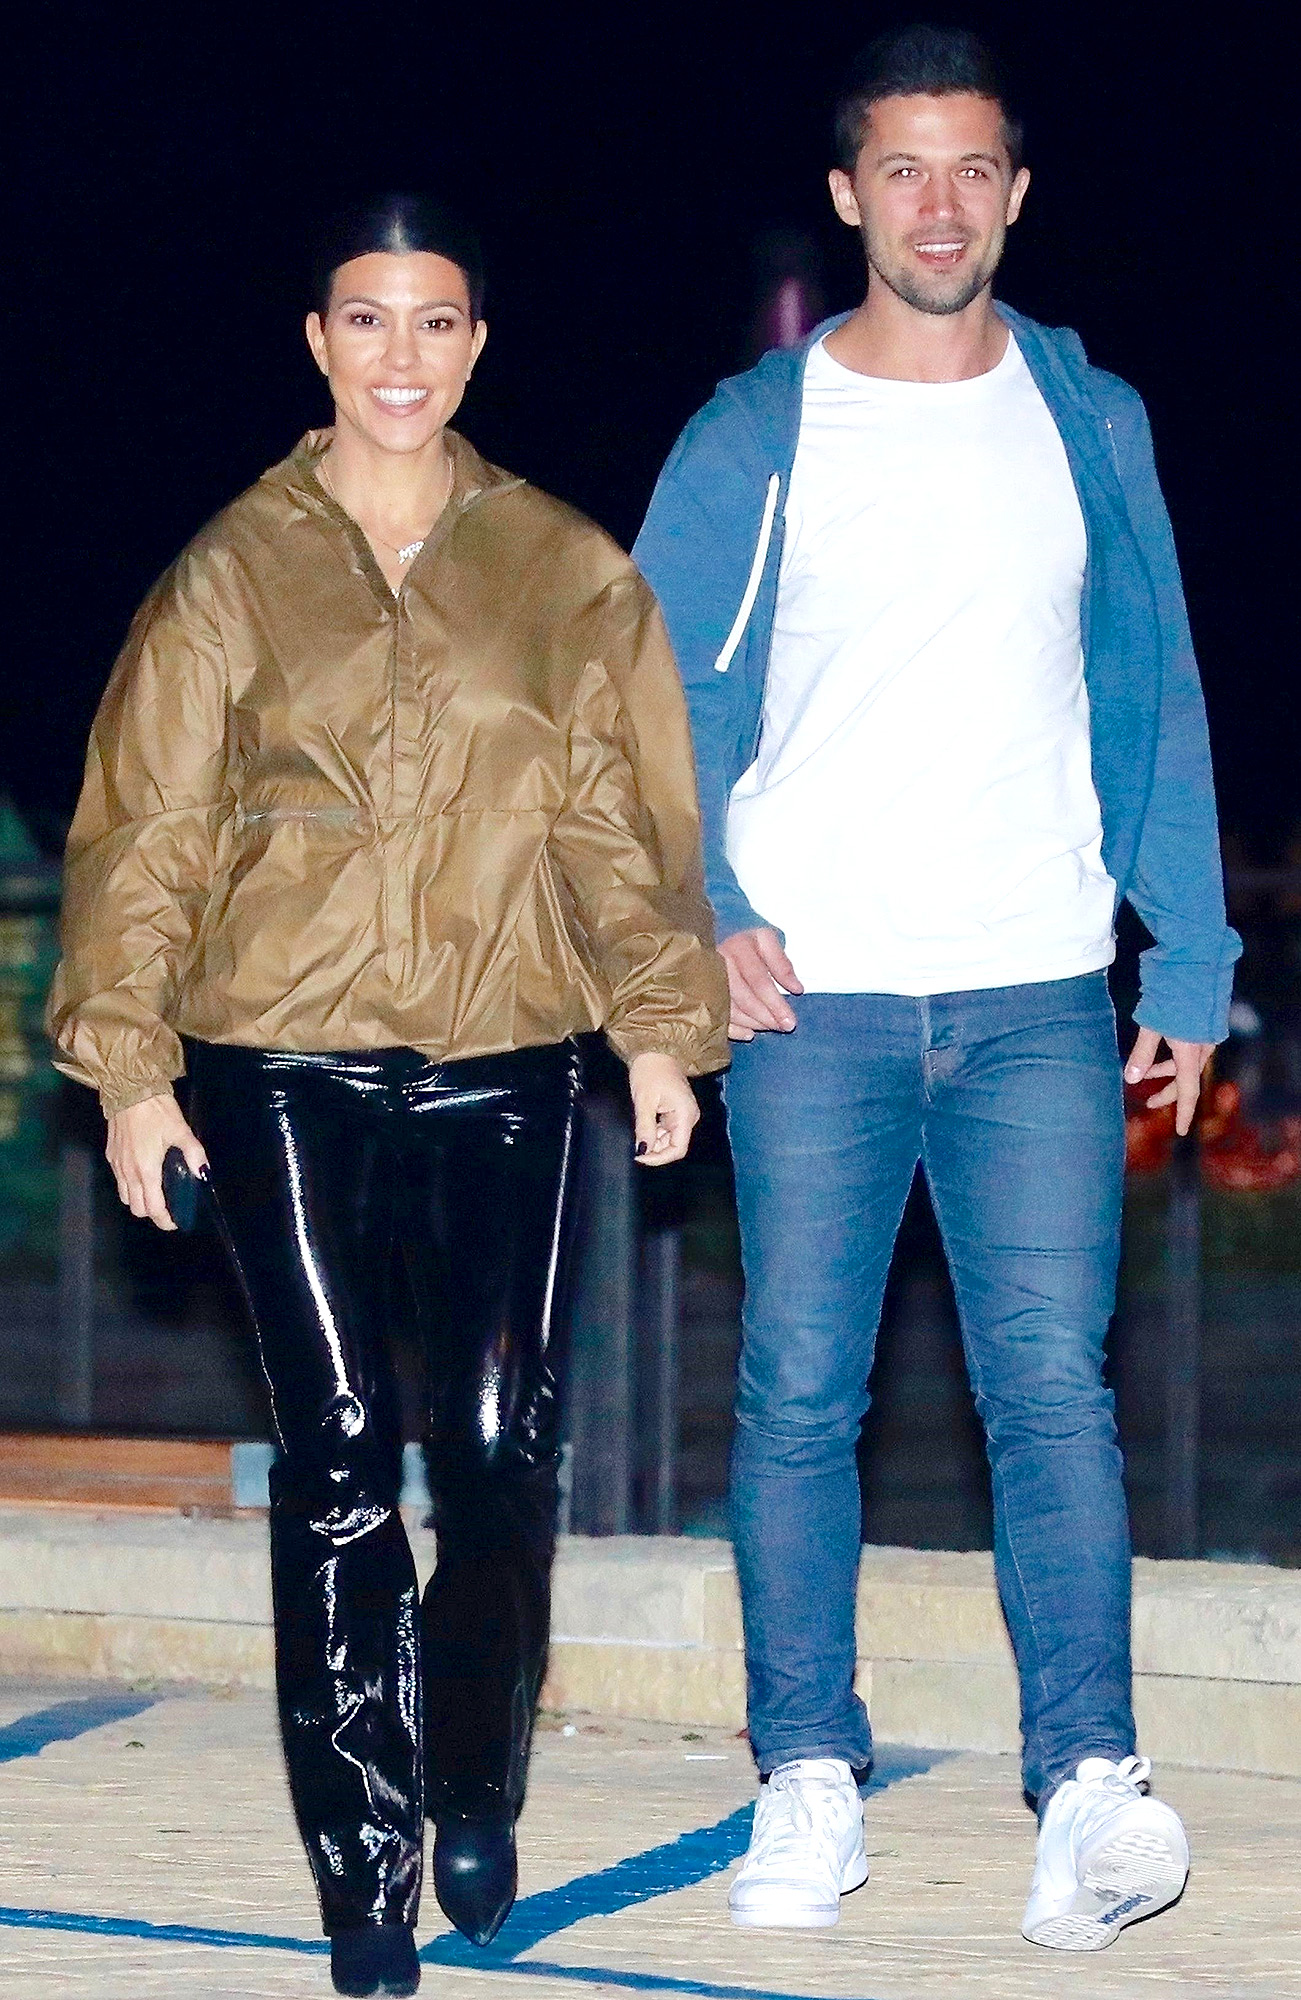 *EXCLUSIVE* Kourtney Kardashian goes for om a dinner date with a mystery guy at Nobu **WEB MUST CALL FOR PRICING**